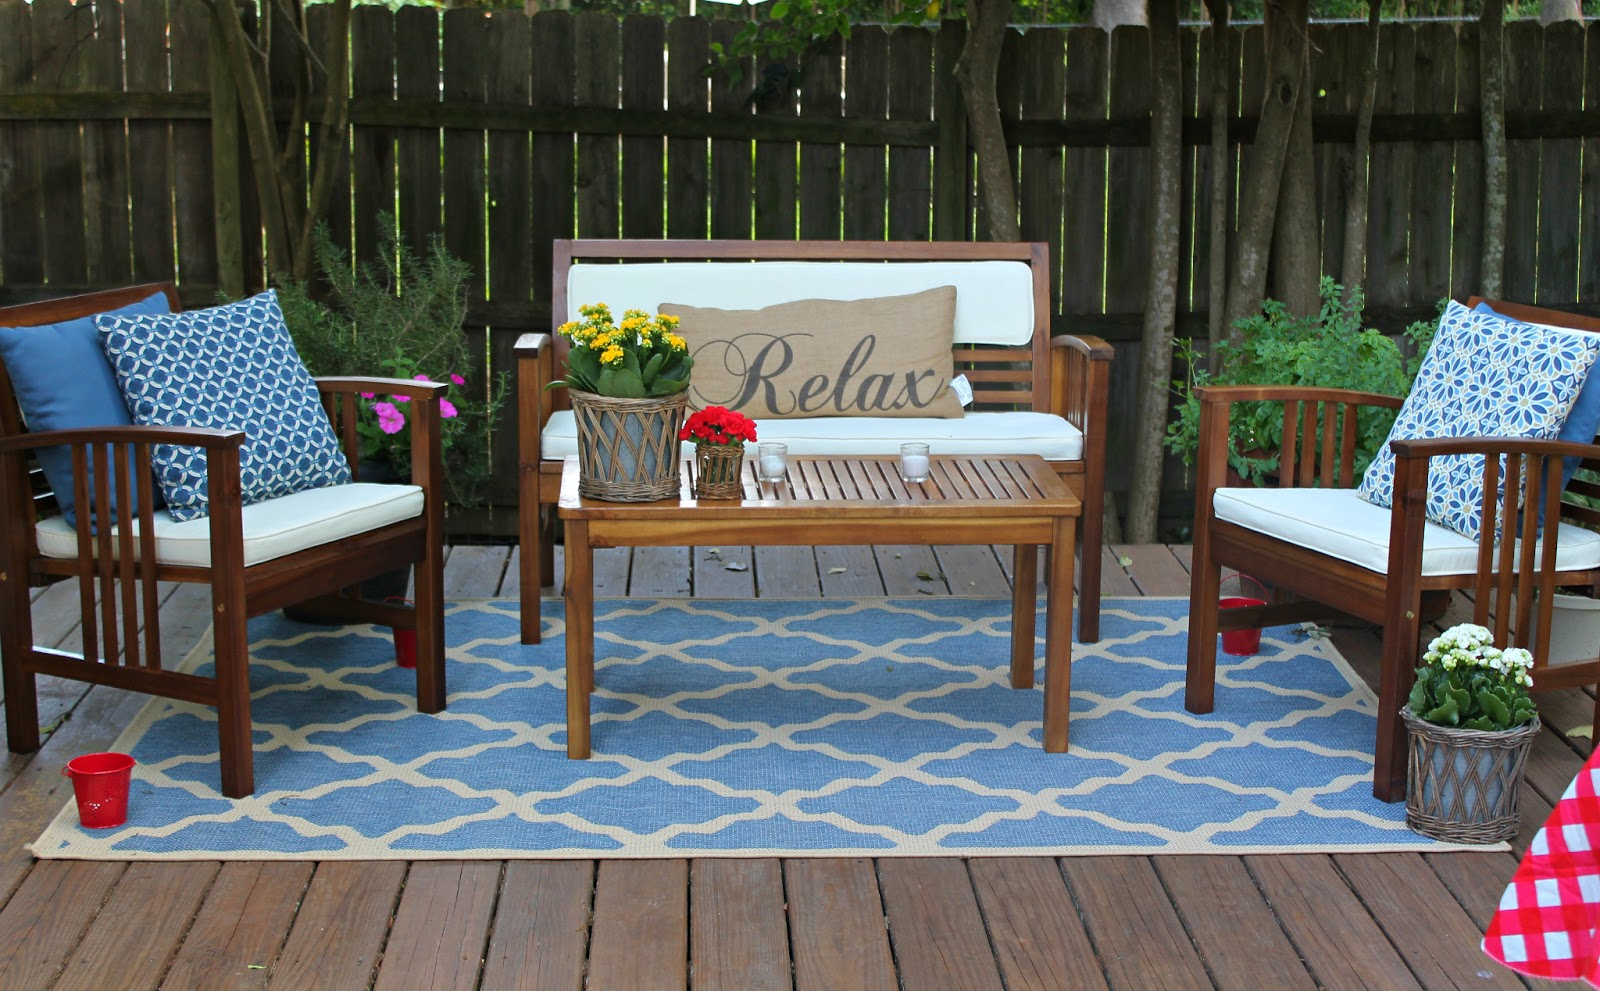 Beautiful Outdoor Rugs For Decks And Patio With World Market Outdoor Rugs With Comfy  Seating And Decorative